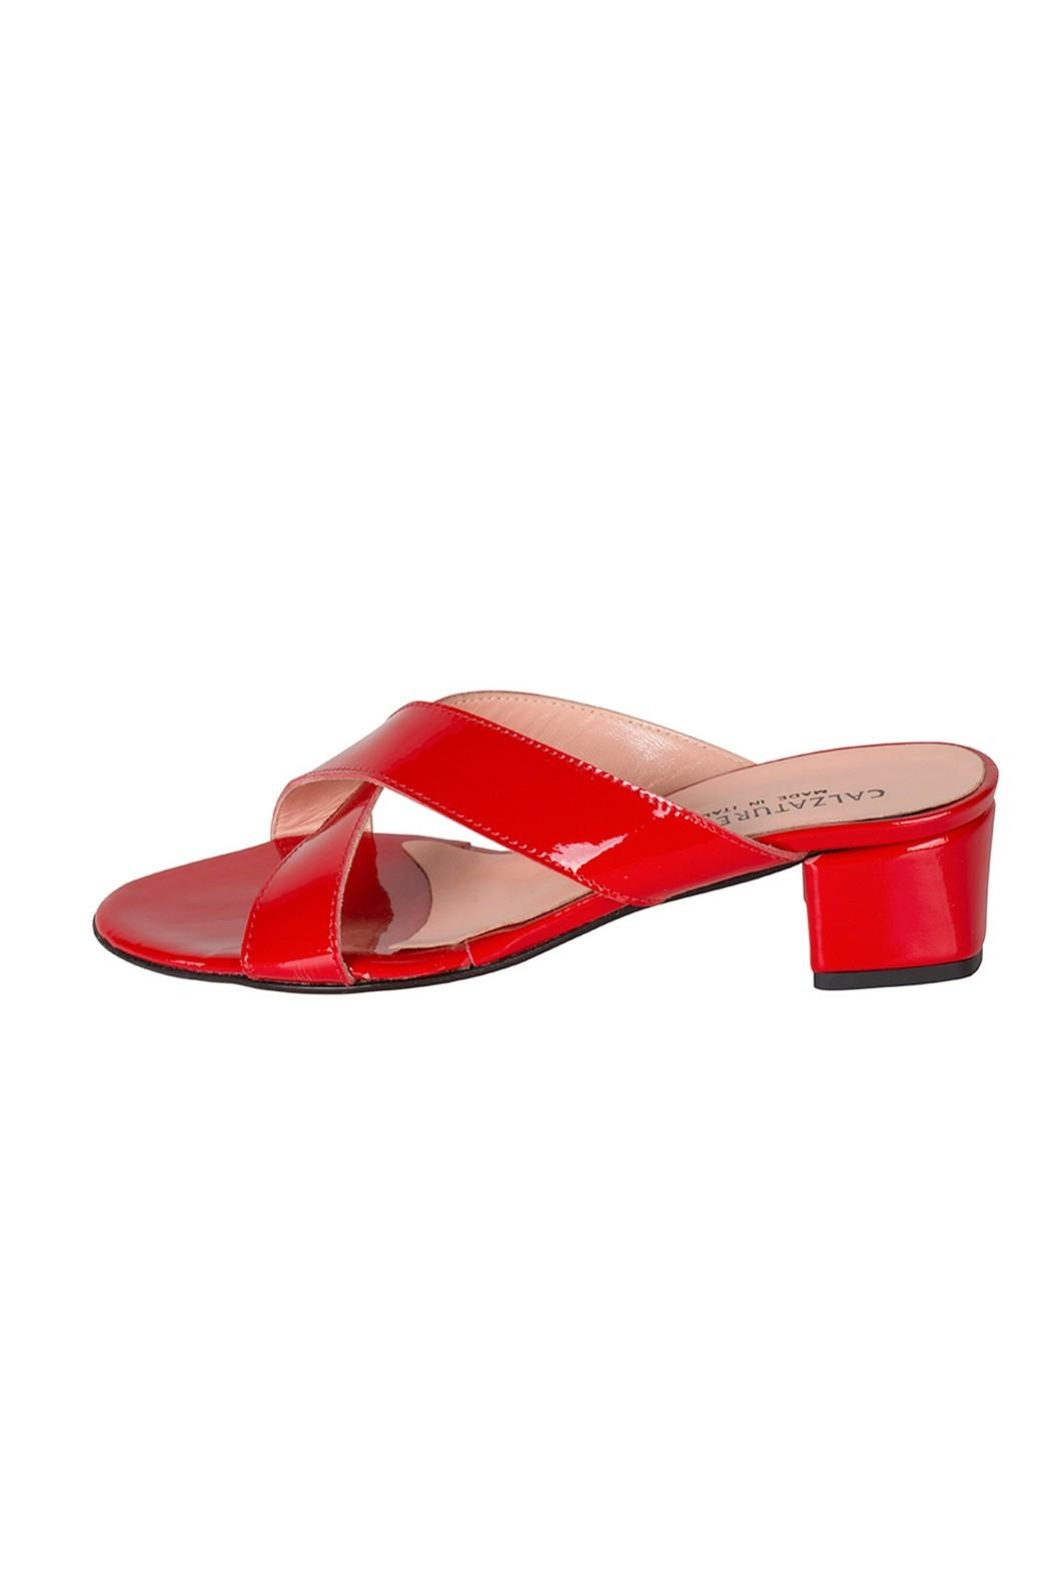 lady doc red crossover heeled slides from south australia by cherri